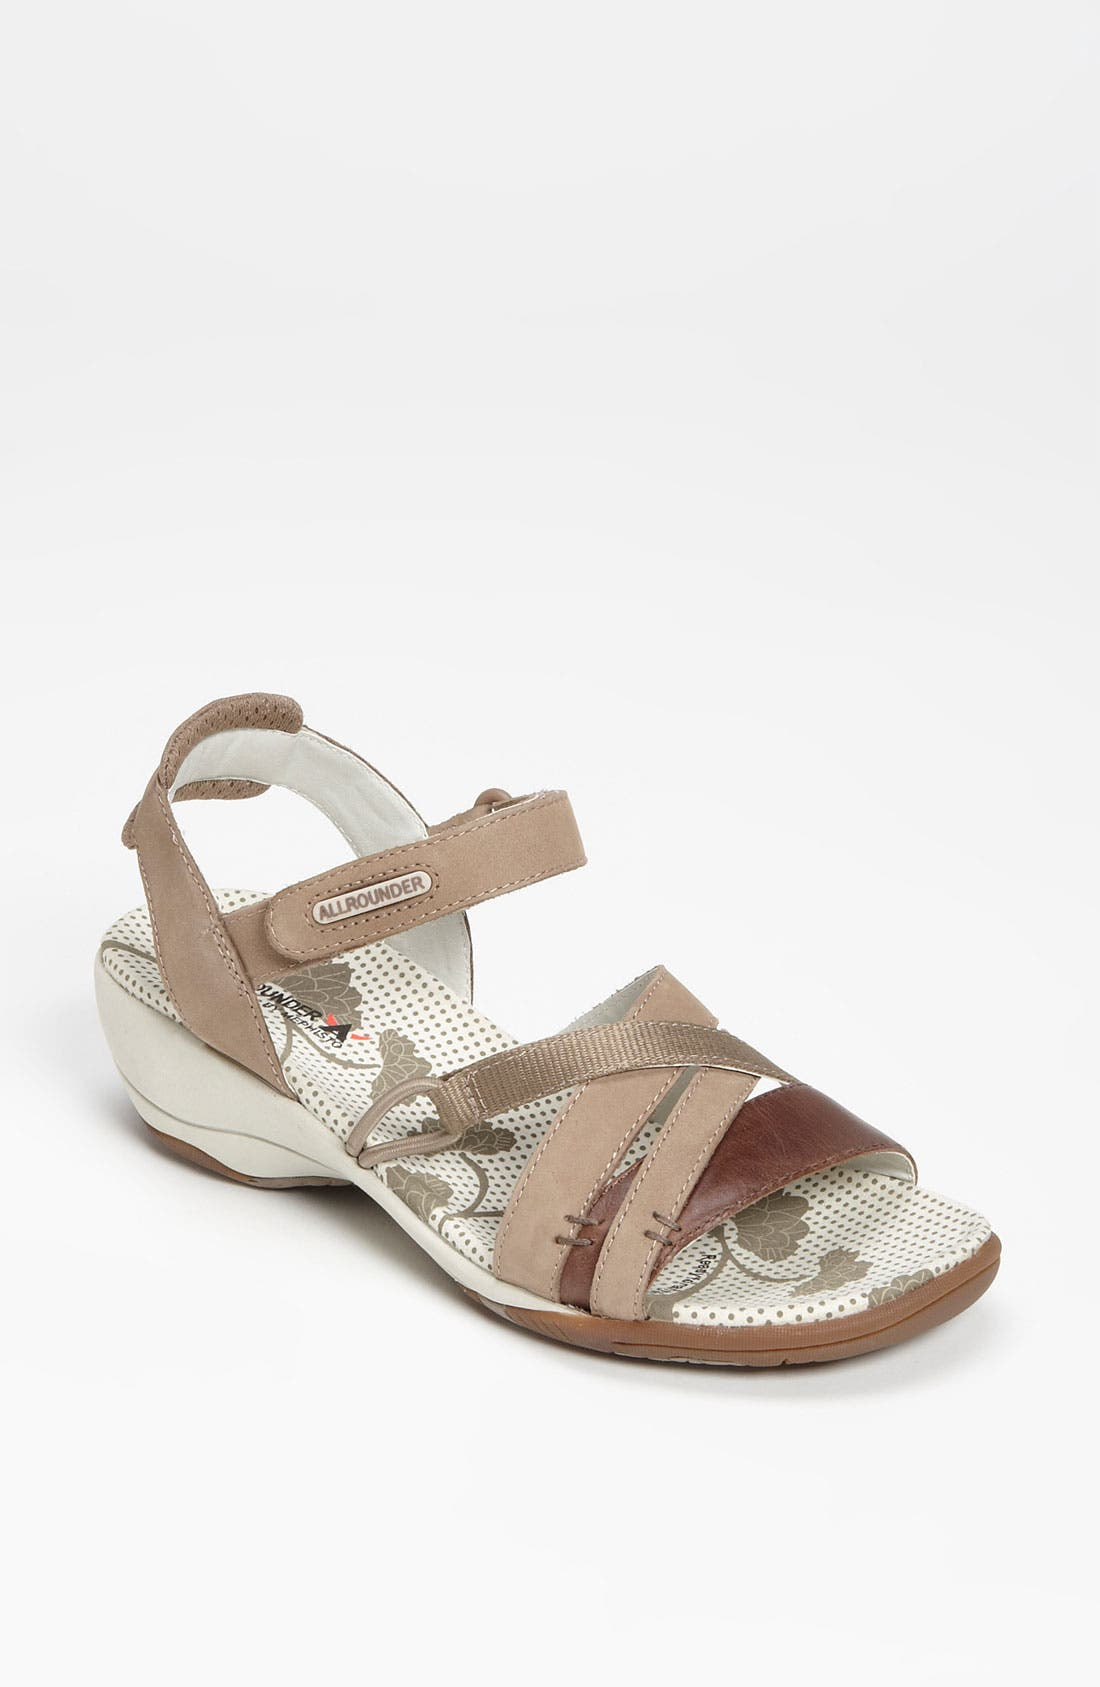 Main Image - All Rounder 'Erla' Sandal